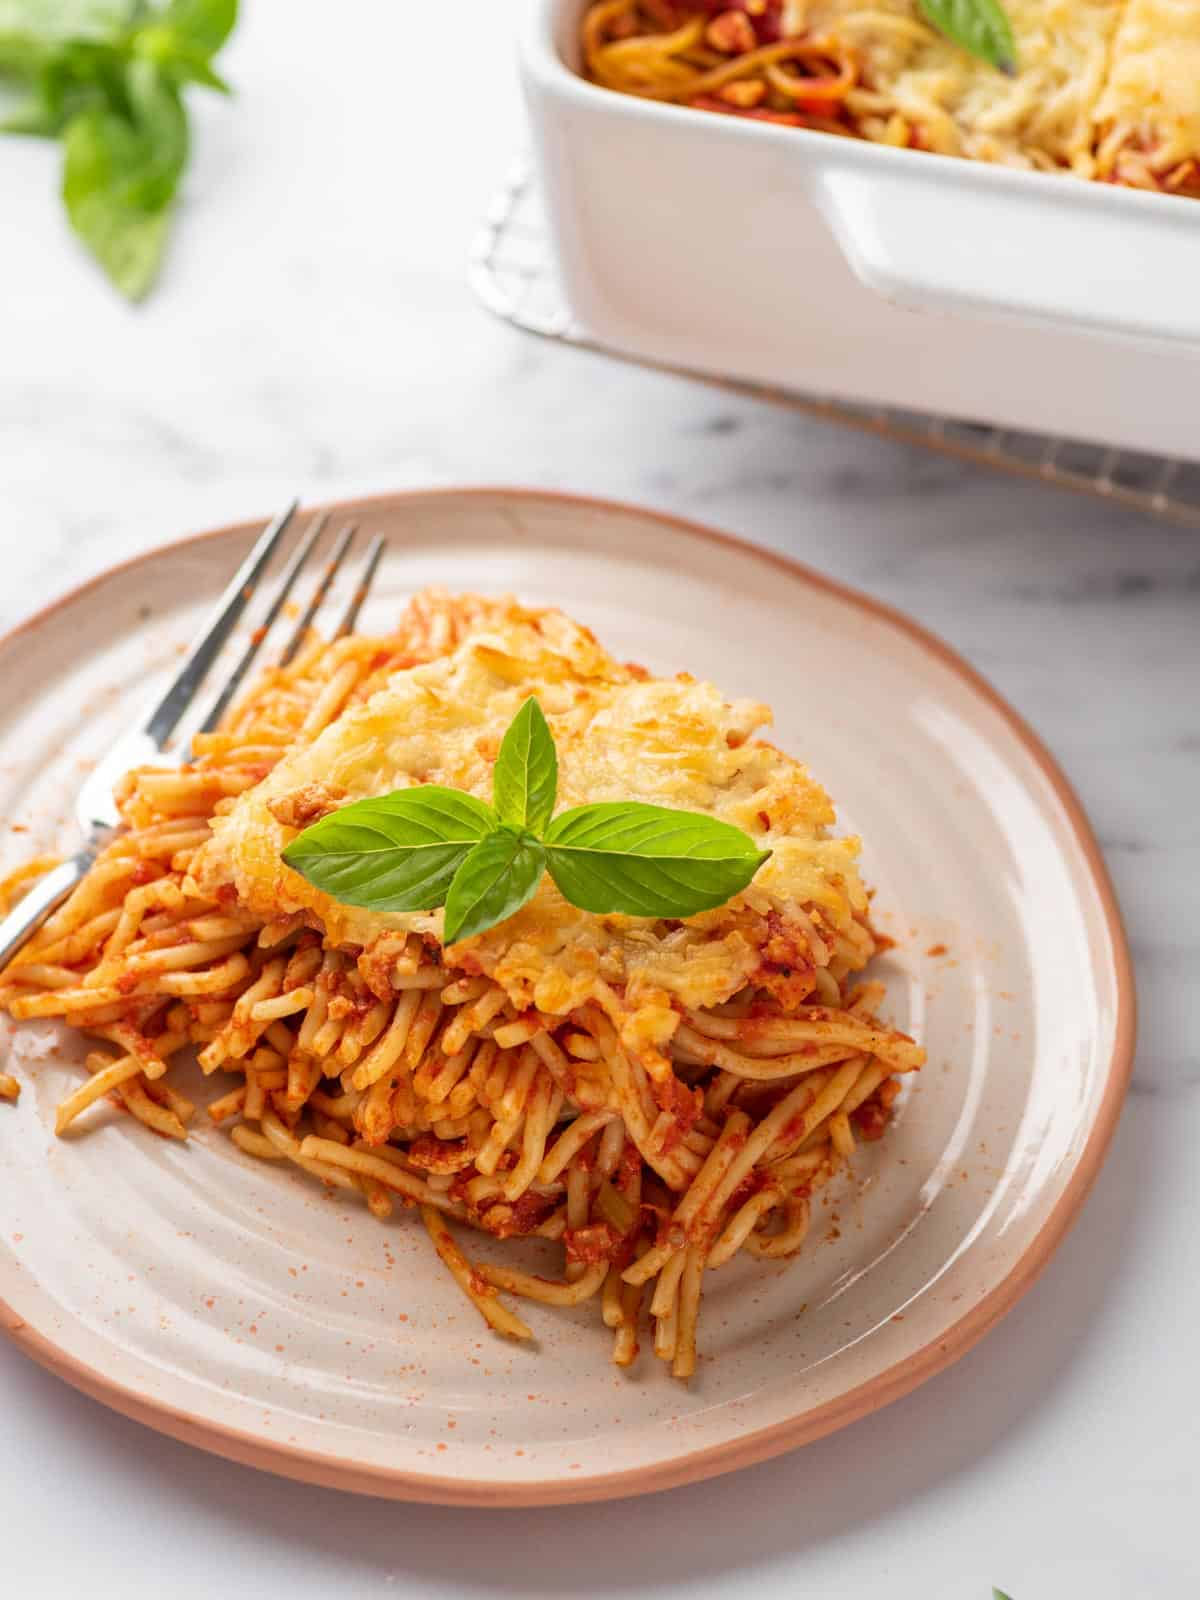 portion of baked spaghetti pasta served on a plate and topped with basil leaves.